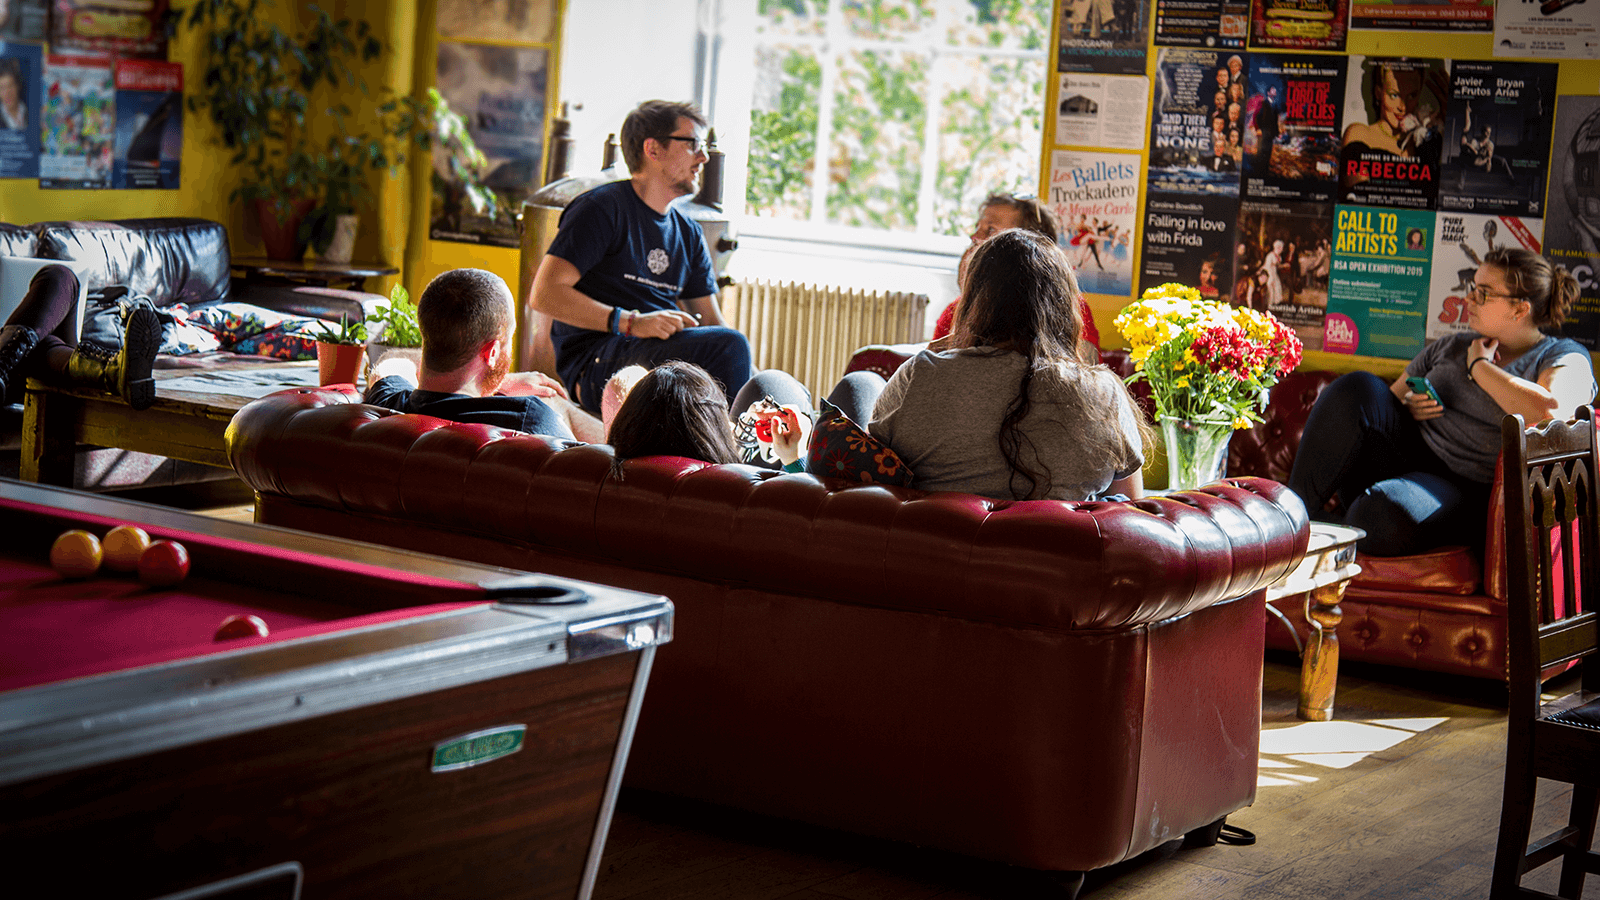 Our main lounge has a pool table, comfortable sofas, free tea and coffee and it's the perfect place to socialise and meet people.